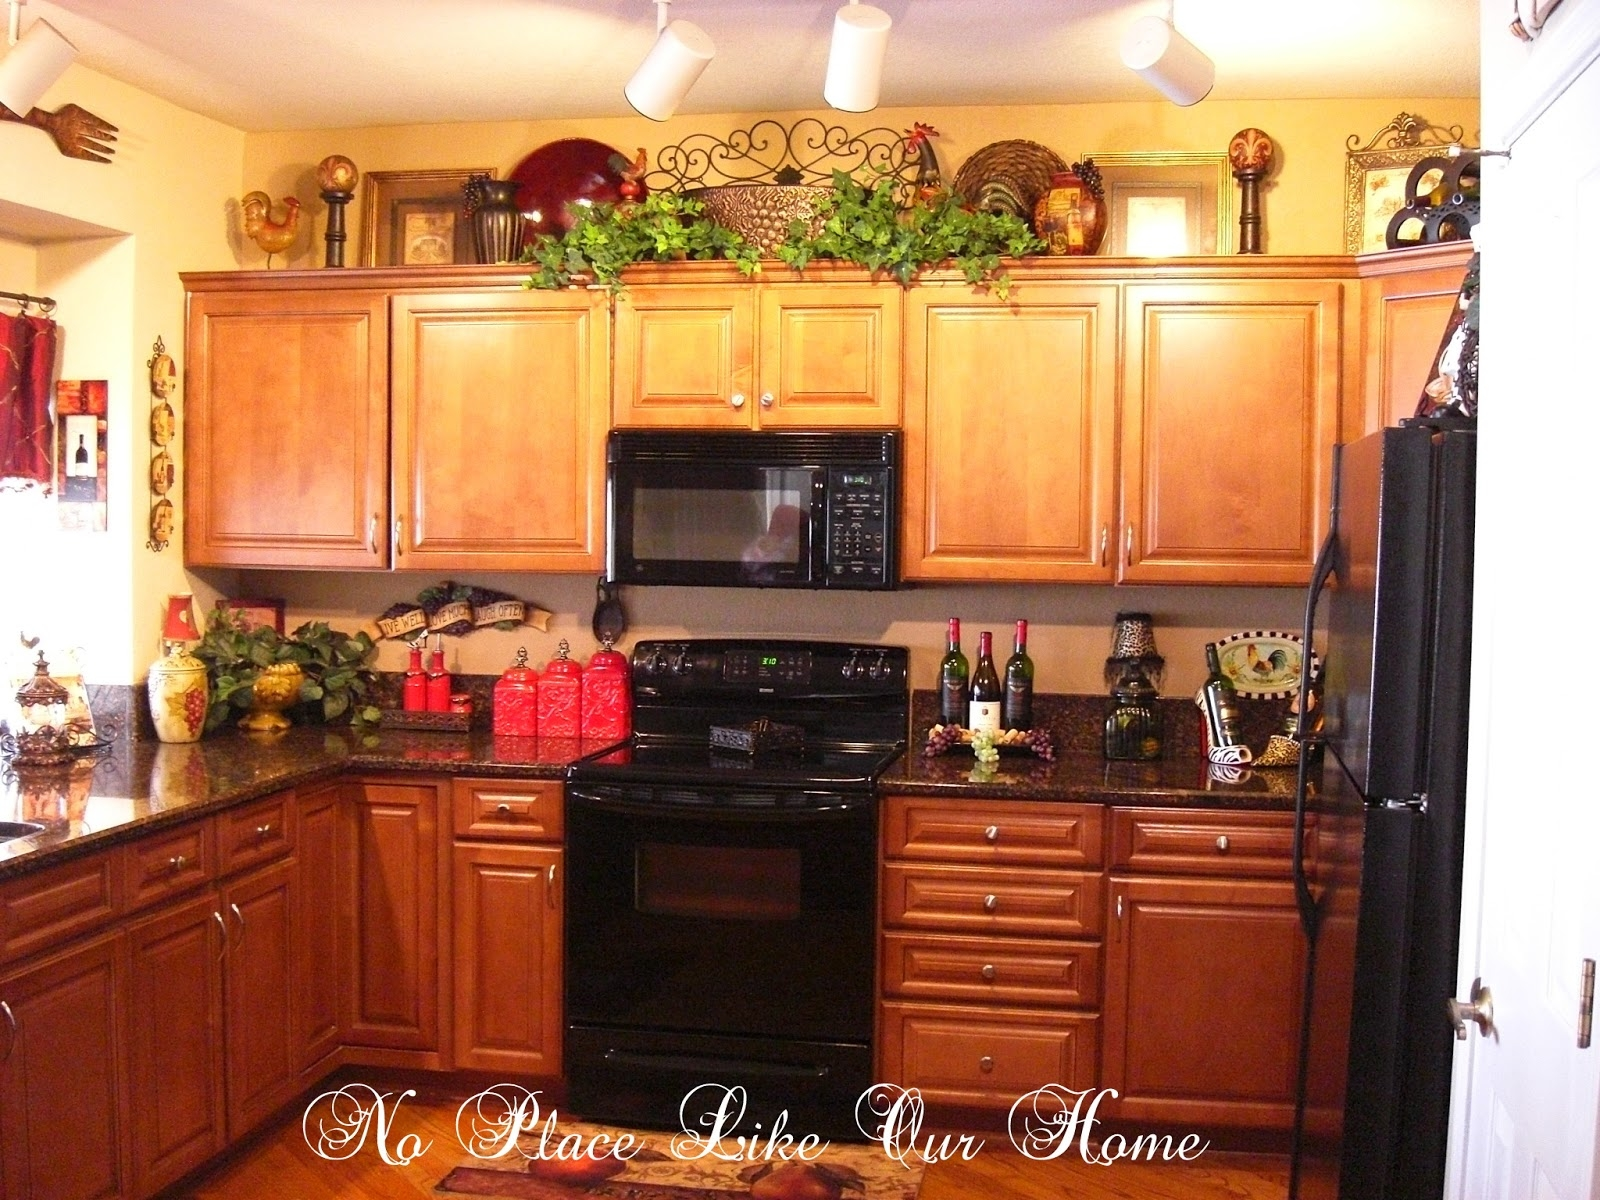 Decorative Items For Kitchen Cabinets